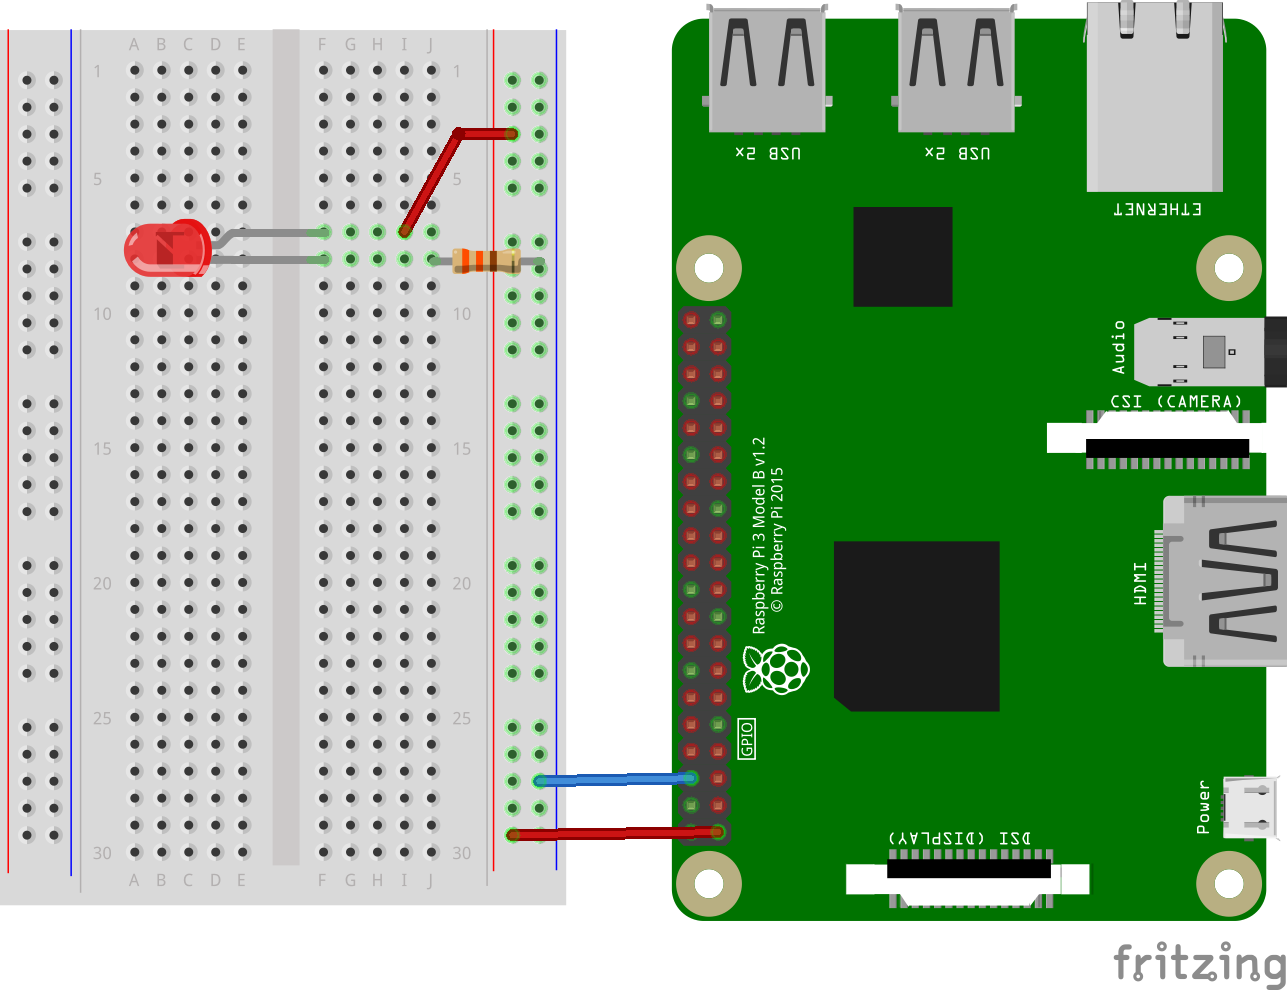 Lighting An Led Using A Breadboard A Raspberry Pi Diagram - Wiring